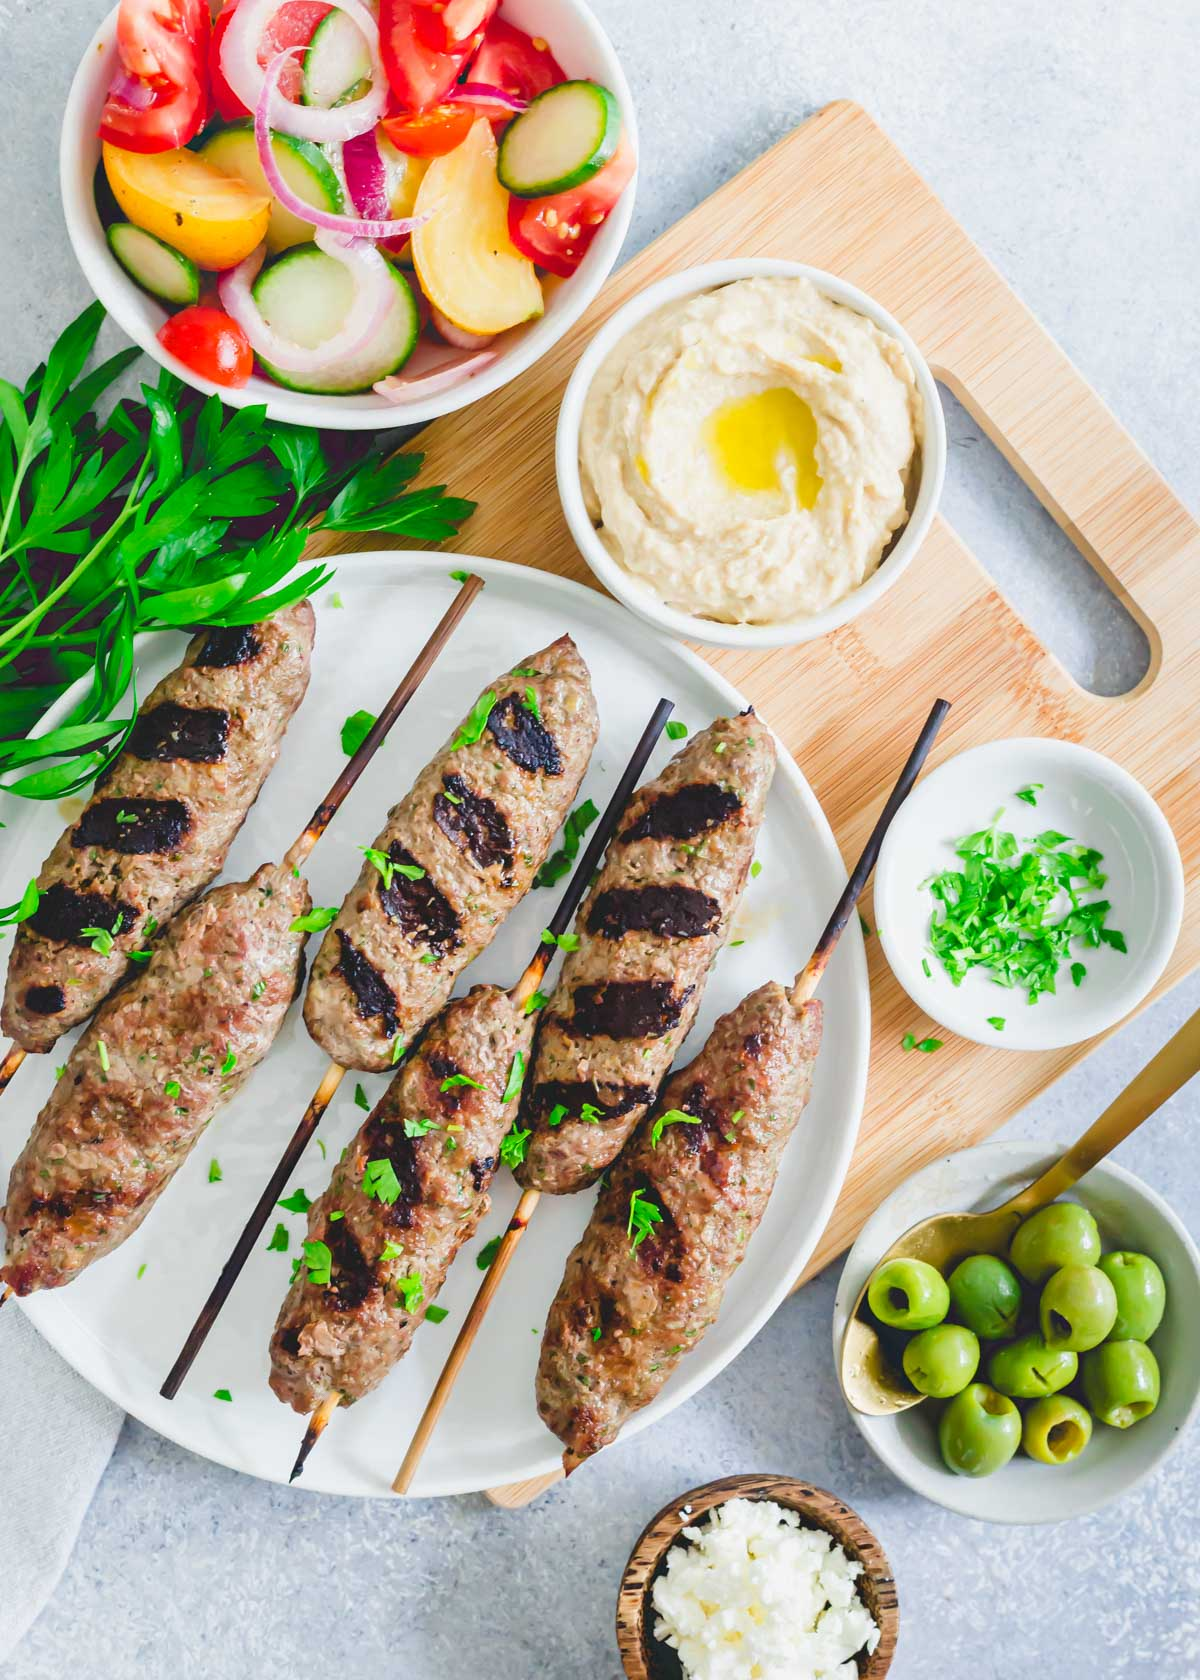 Grilled beef kafta kabobs on a plate with parsley.